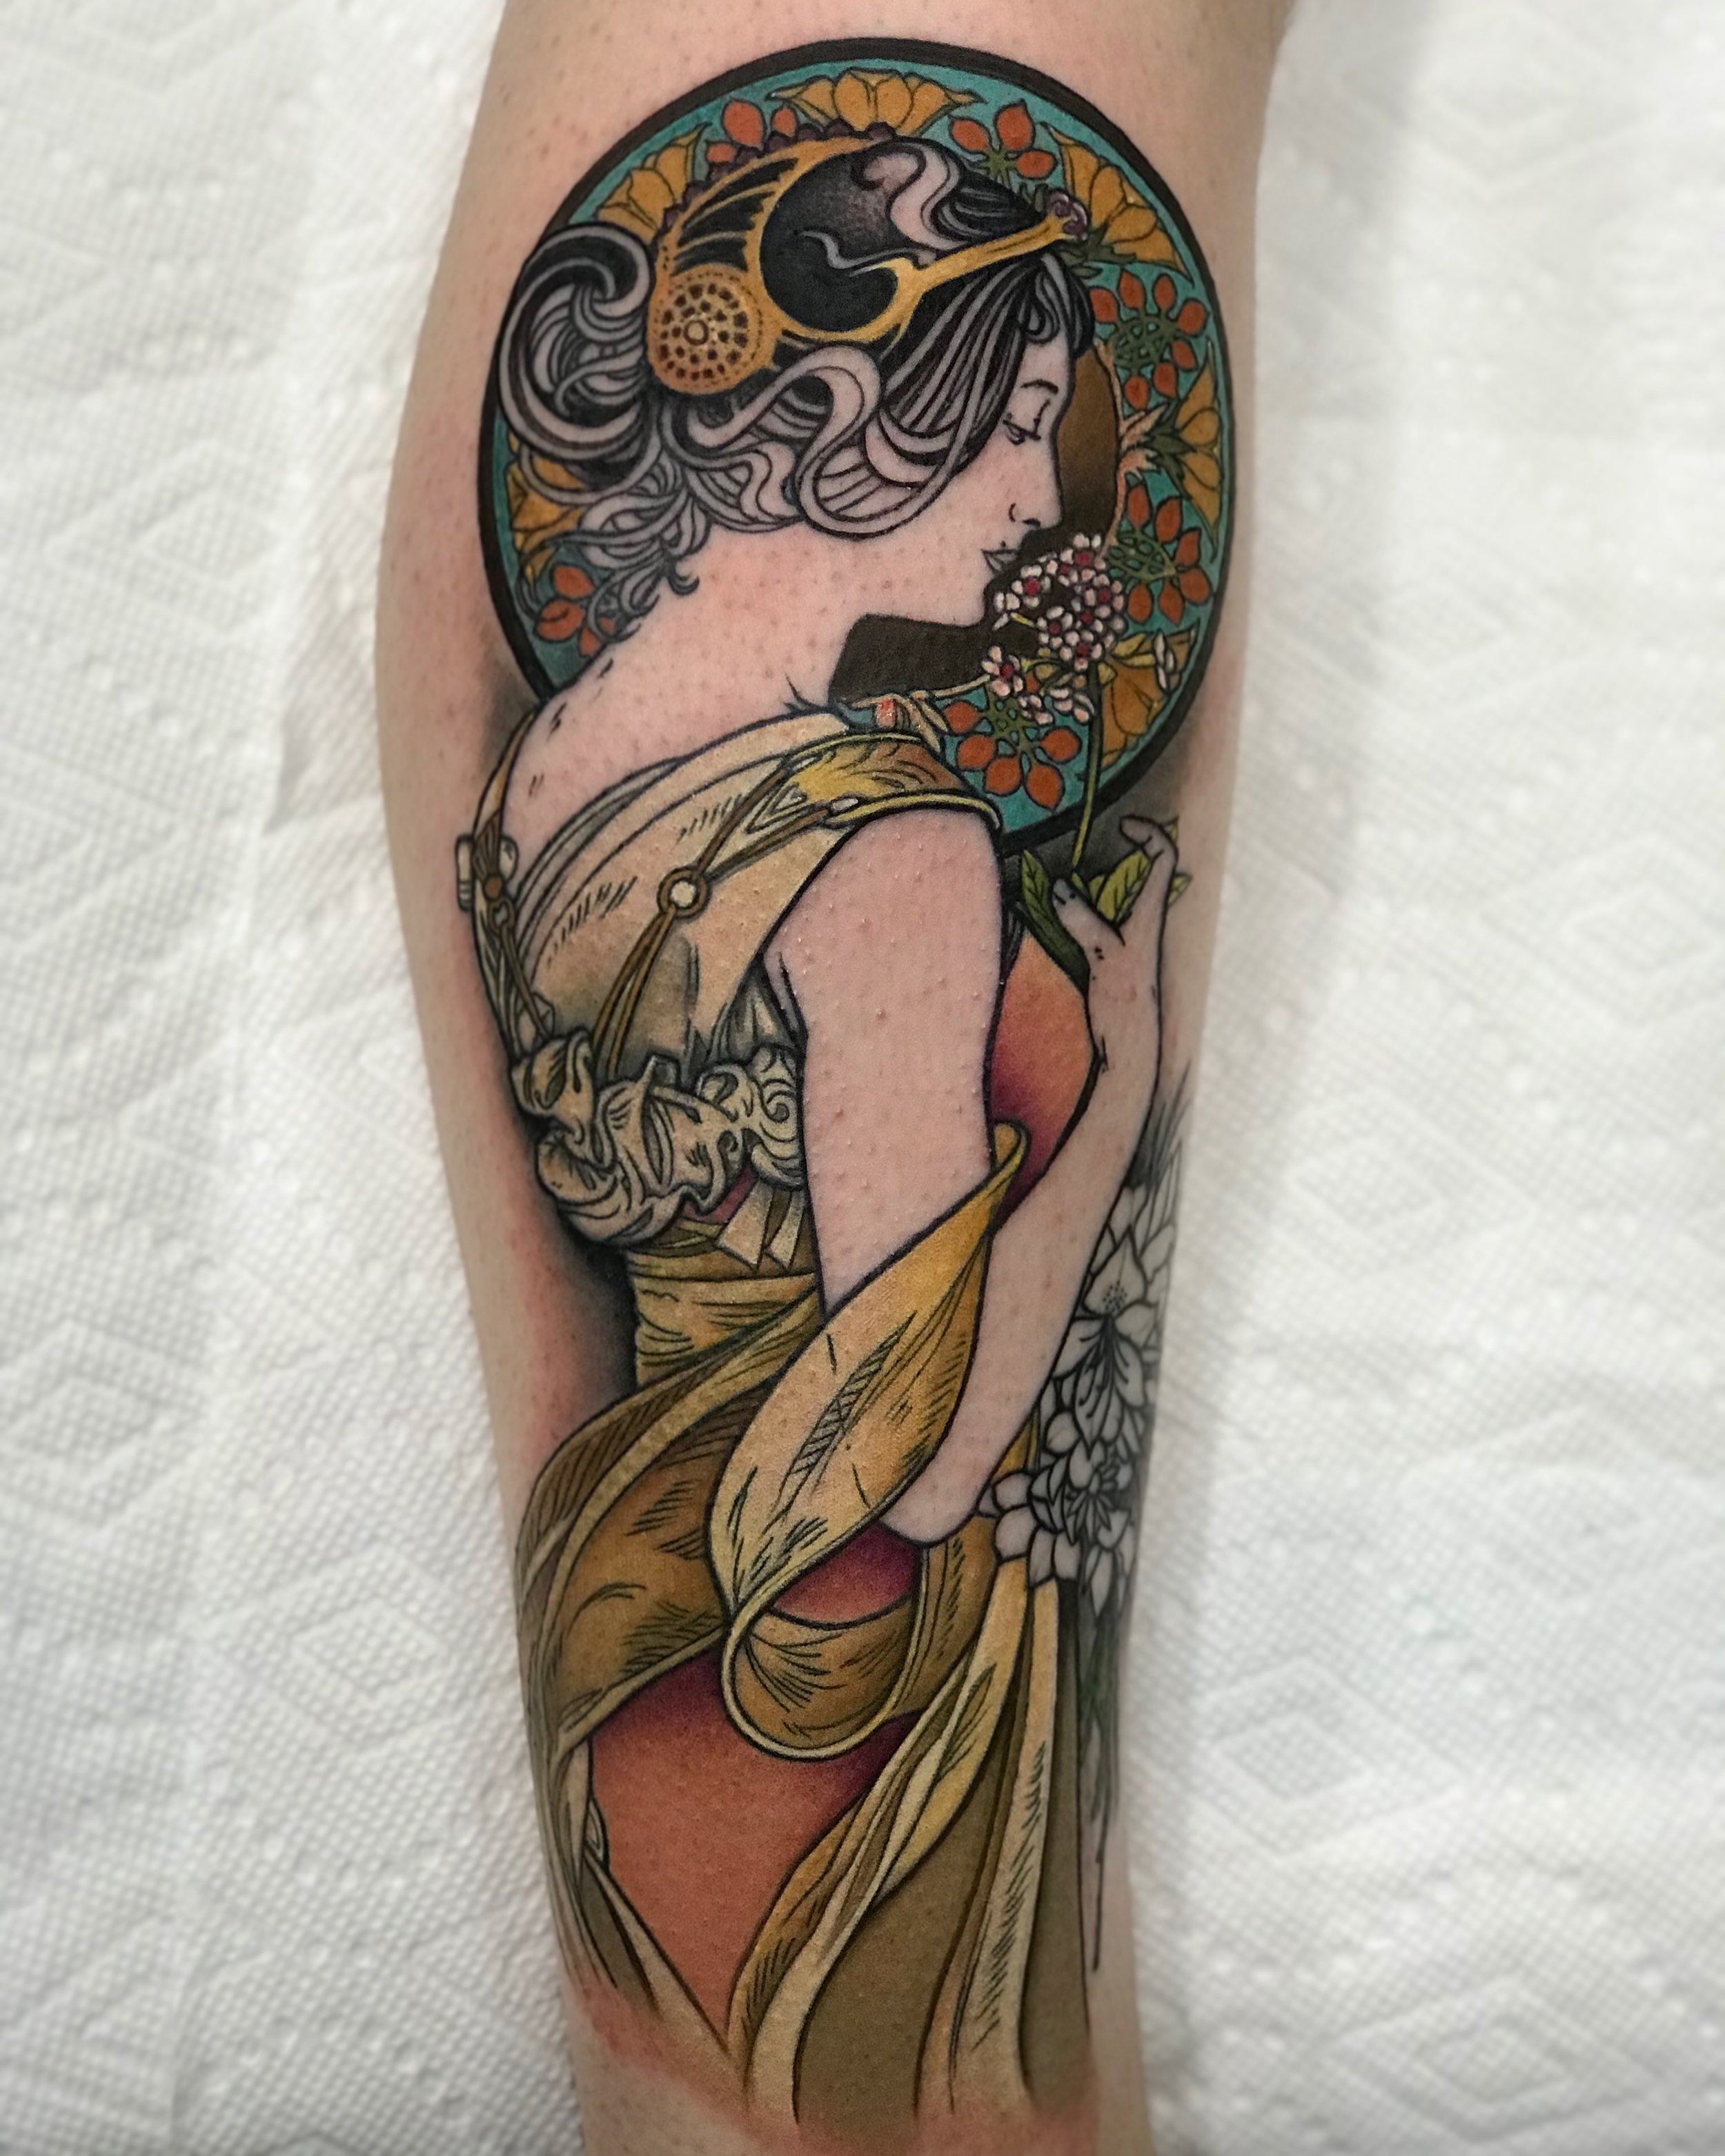 Mucha Tattoo by David Mushaney